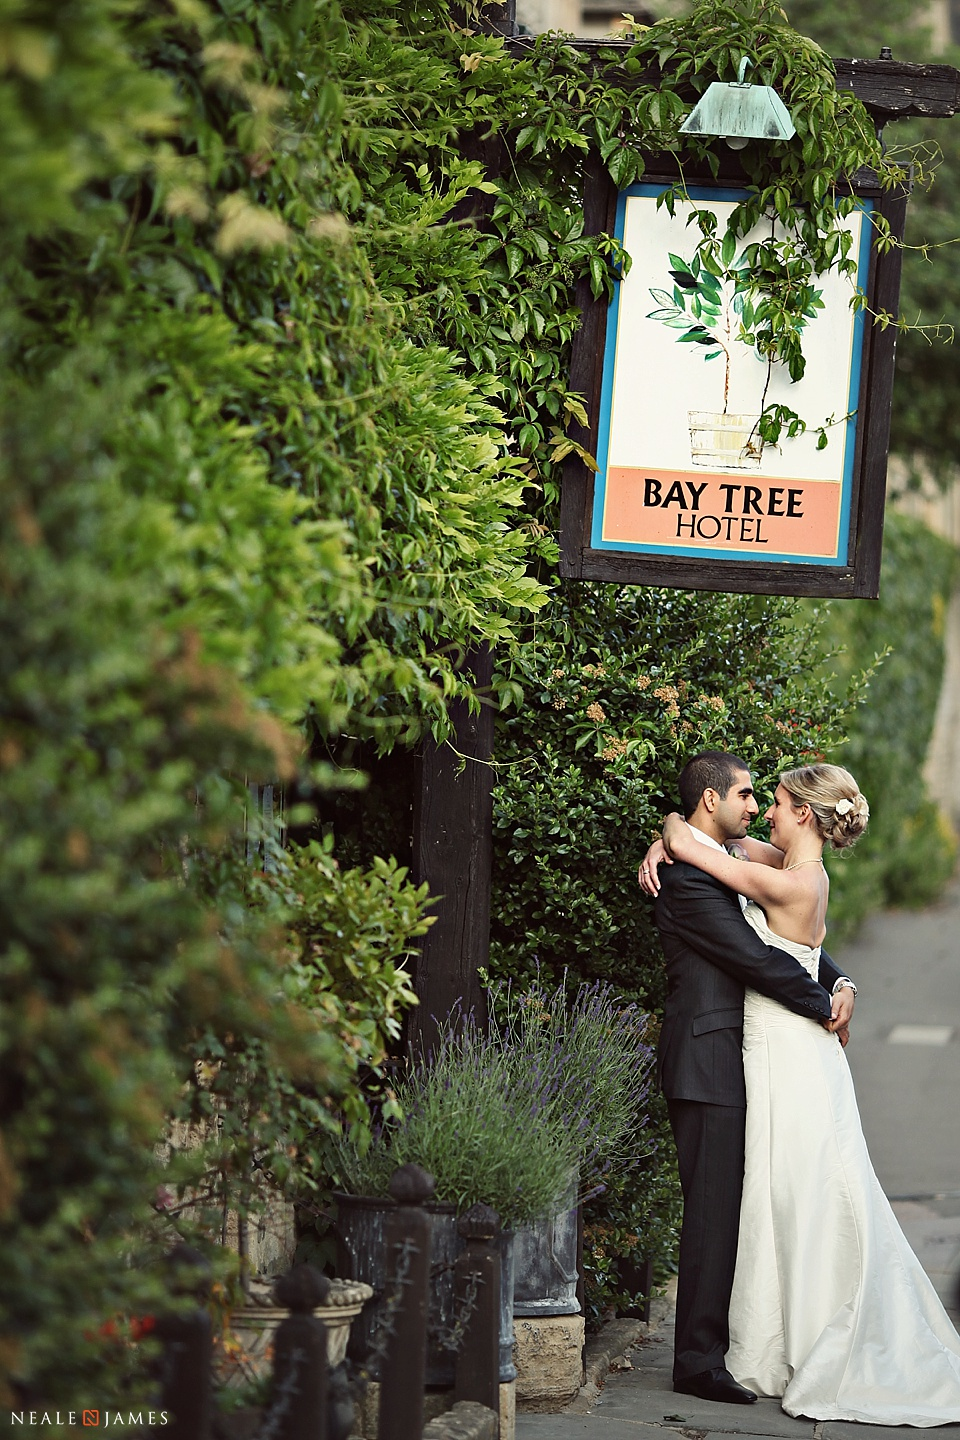 Colour photo of couple outside Bay Tree Hotel, Burford